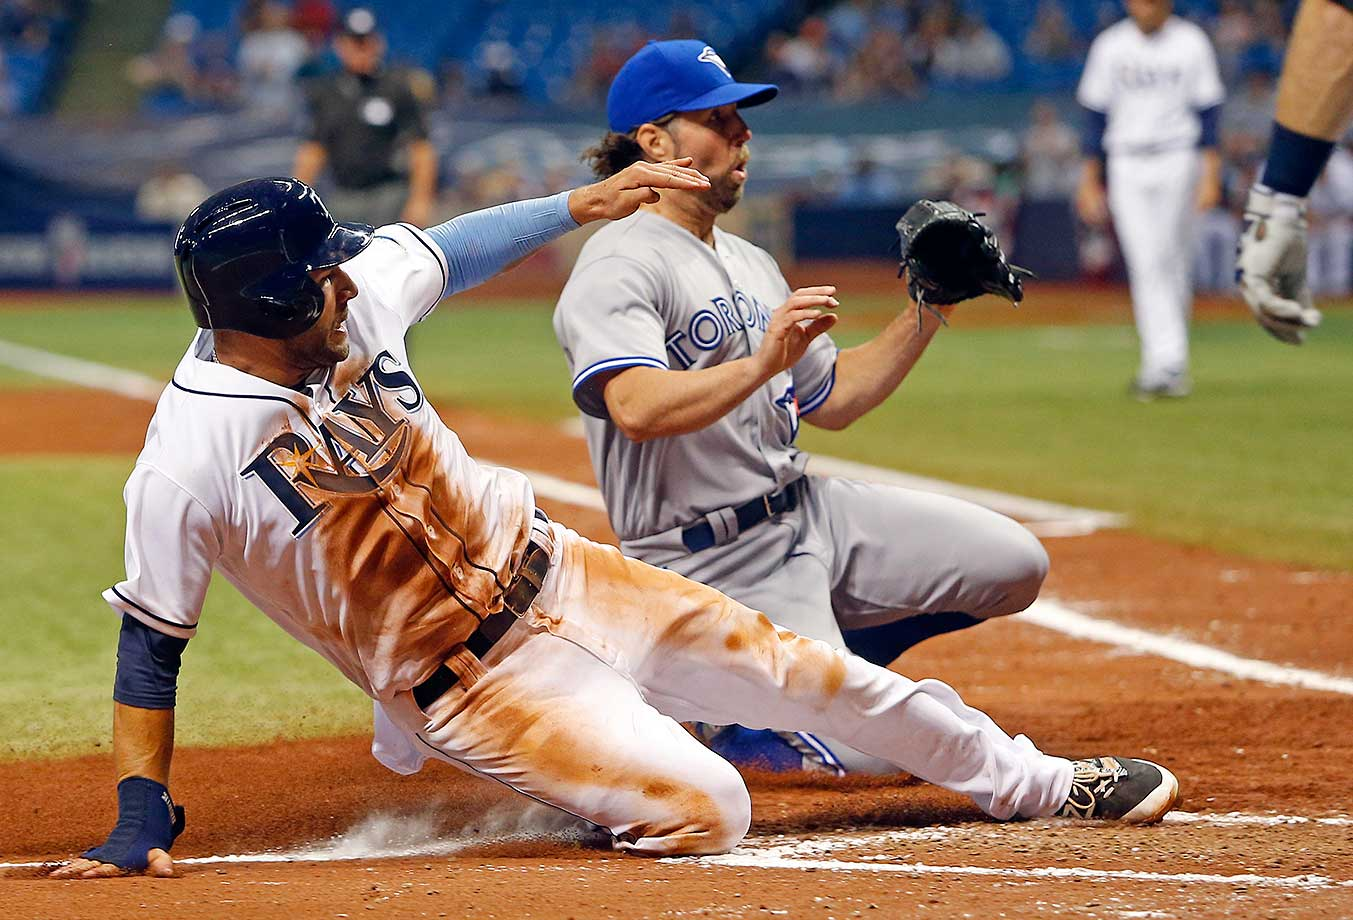 Kevin Kiermaier of Tampa Bay slides home ahead of pitcher R.A. Dickey of the Toronto Blue Jays.